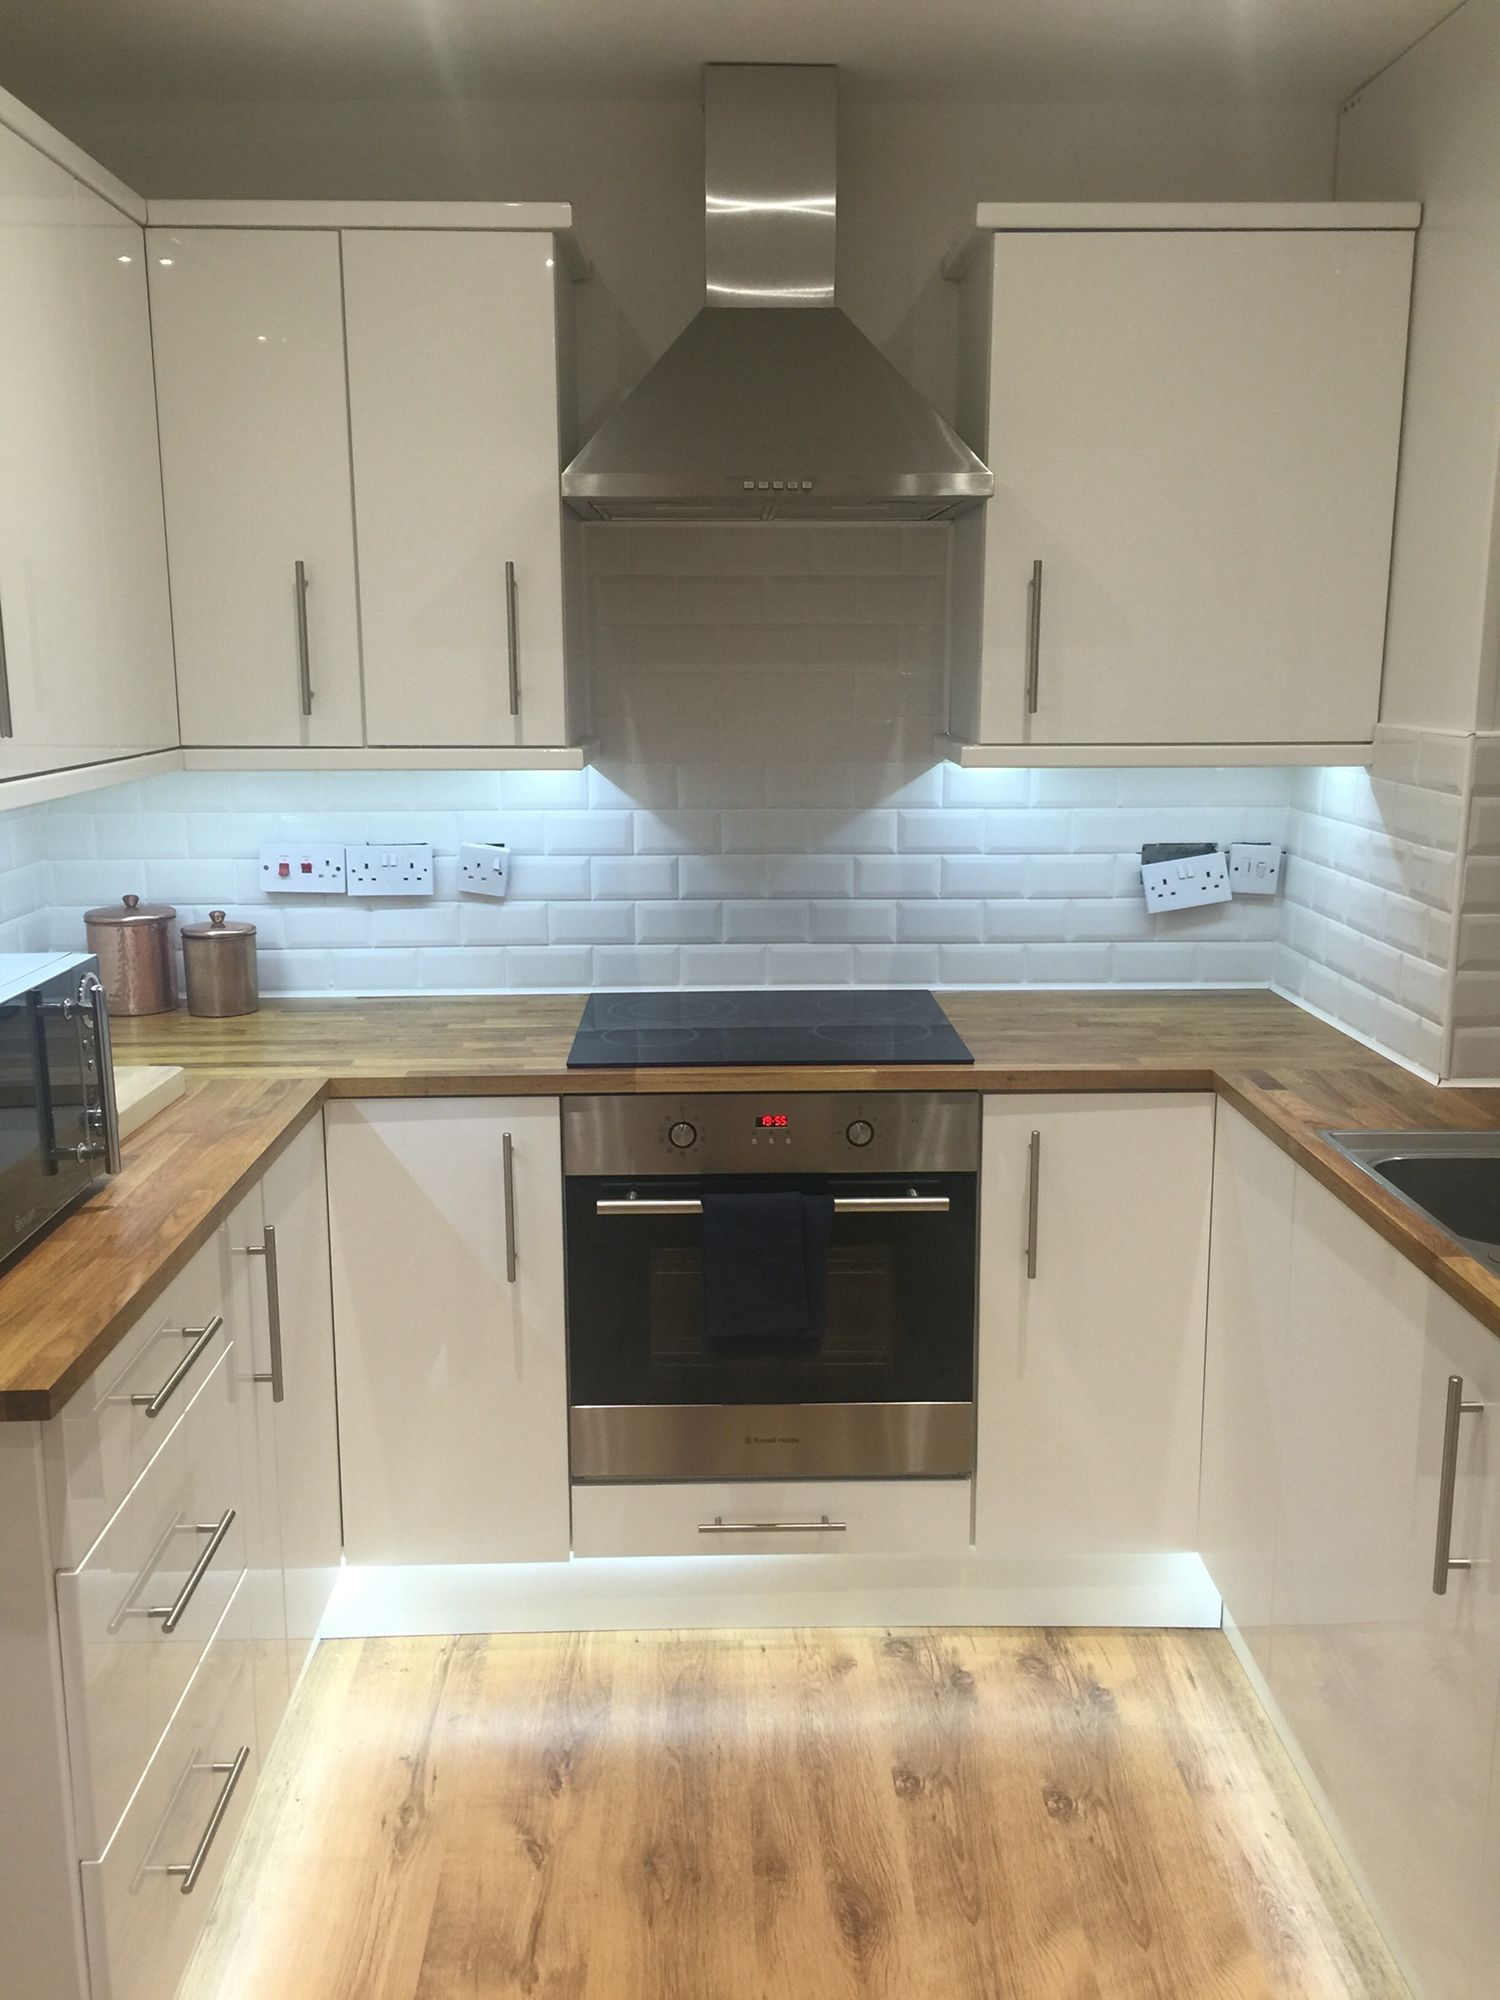 B&q Kitchen B Q Small Kitchen White Gloss Wooden Subway Tiles Homely